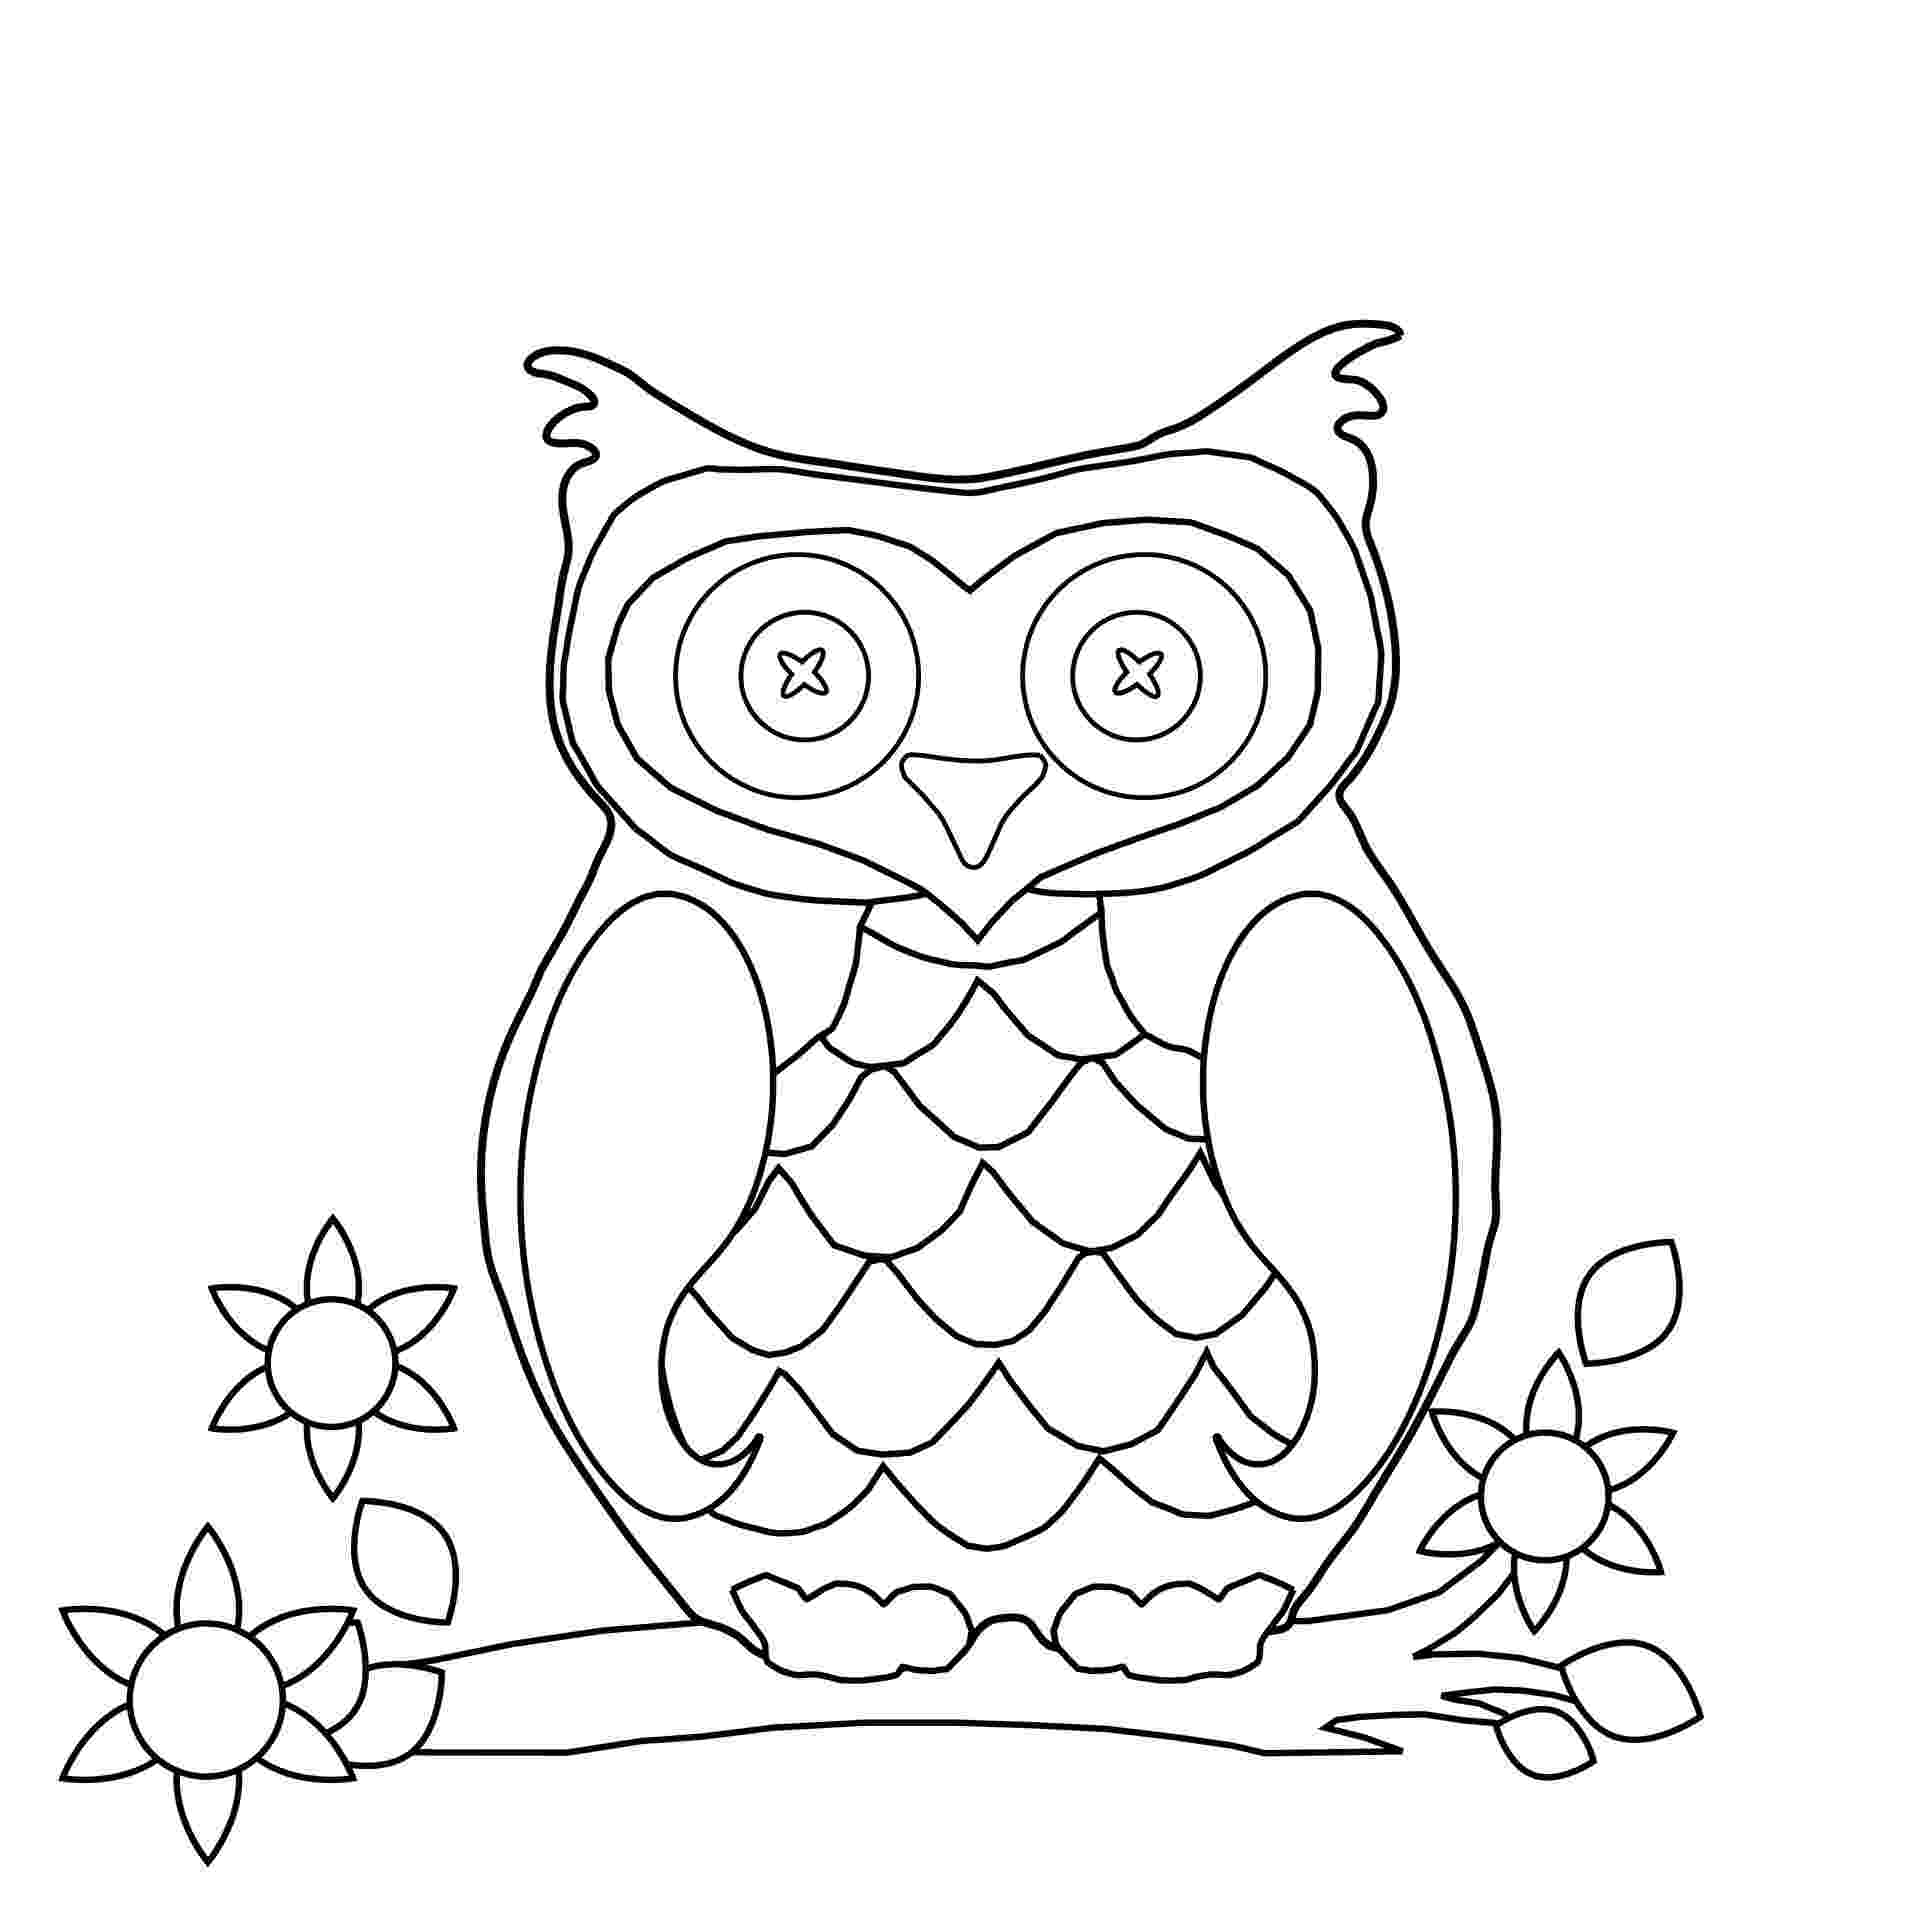 owl pictures to print owl coloring pages owl coloring pages print pictures owl to